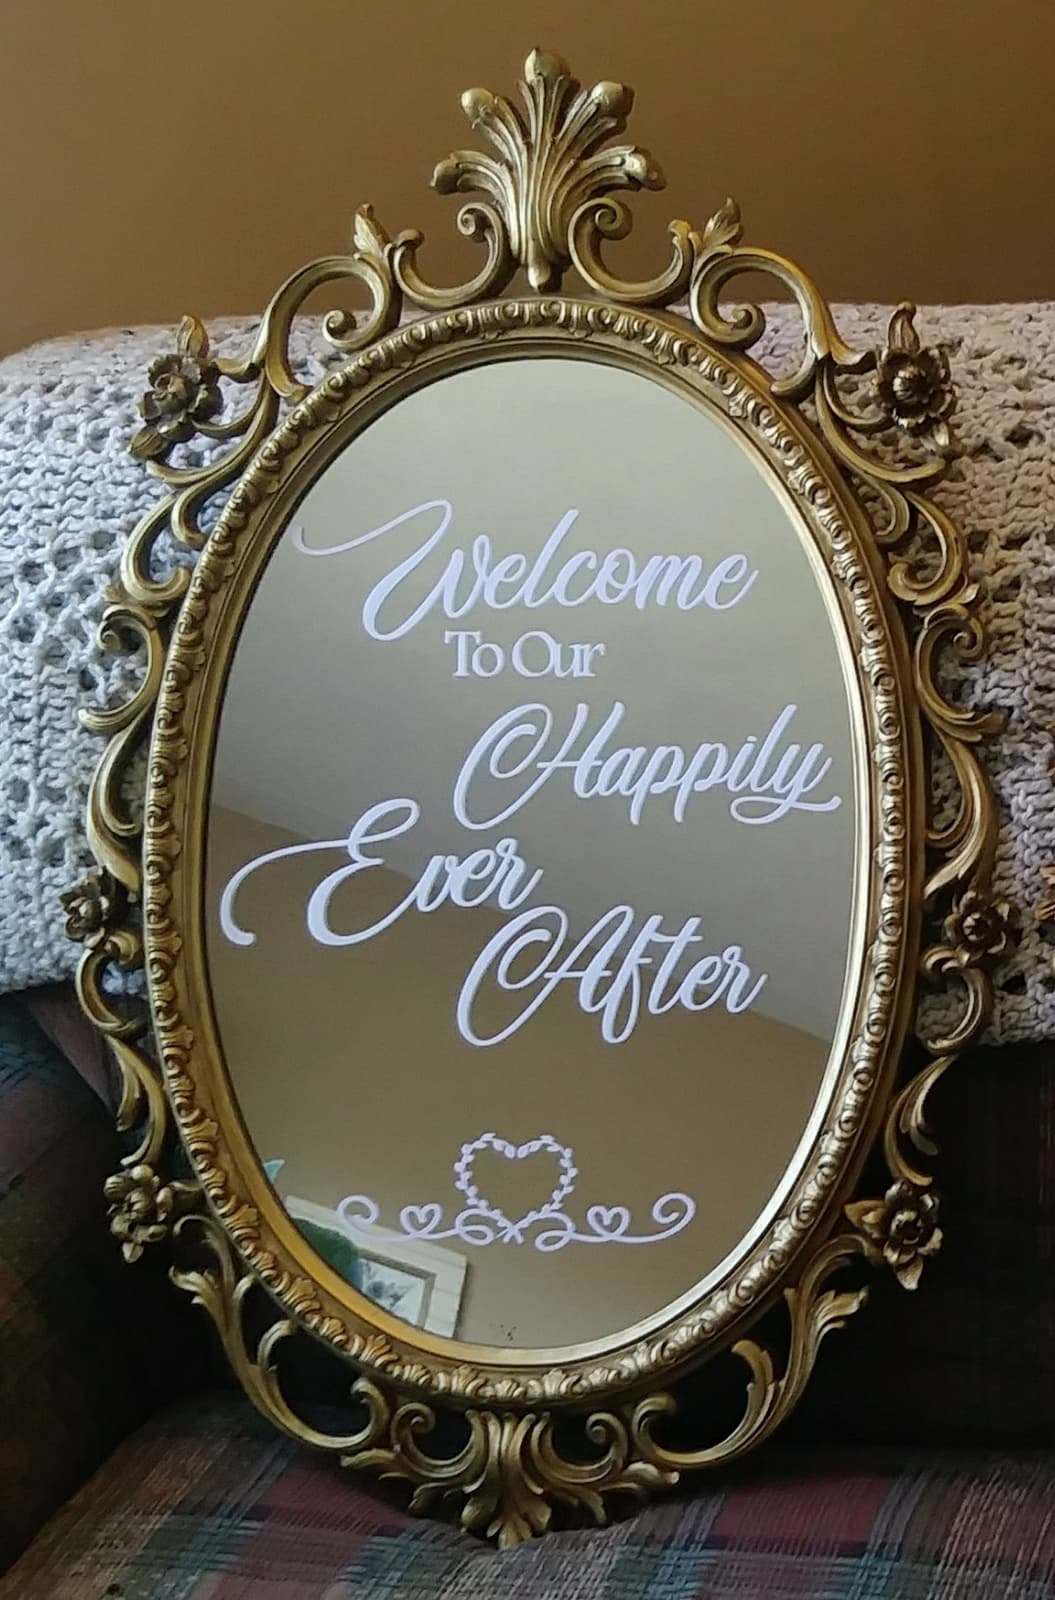 Ornate Happily Ever After - $40.00